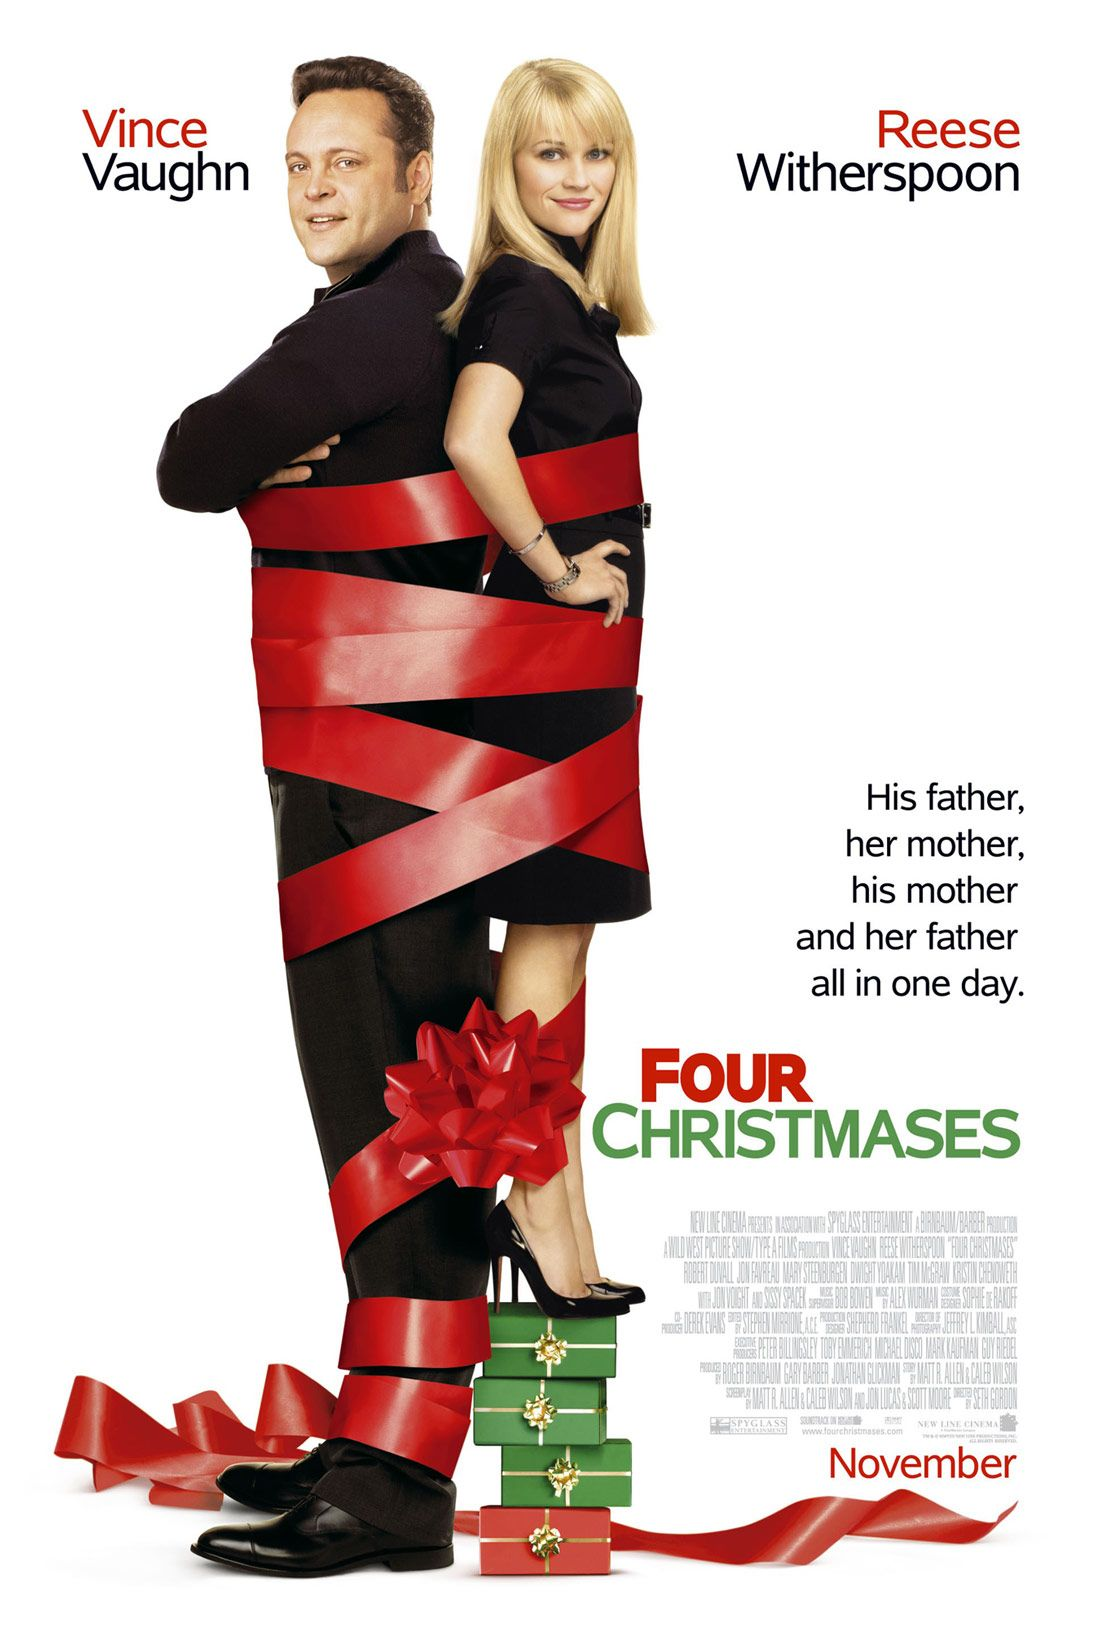 Four Christmases; I know this movie gets a lot of flack